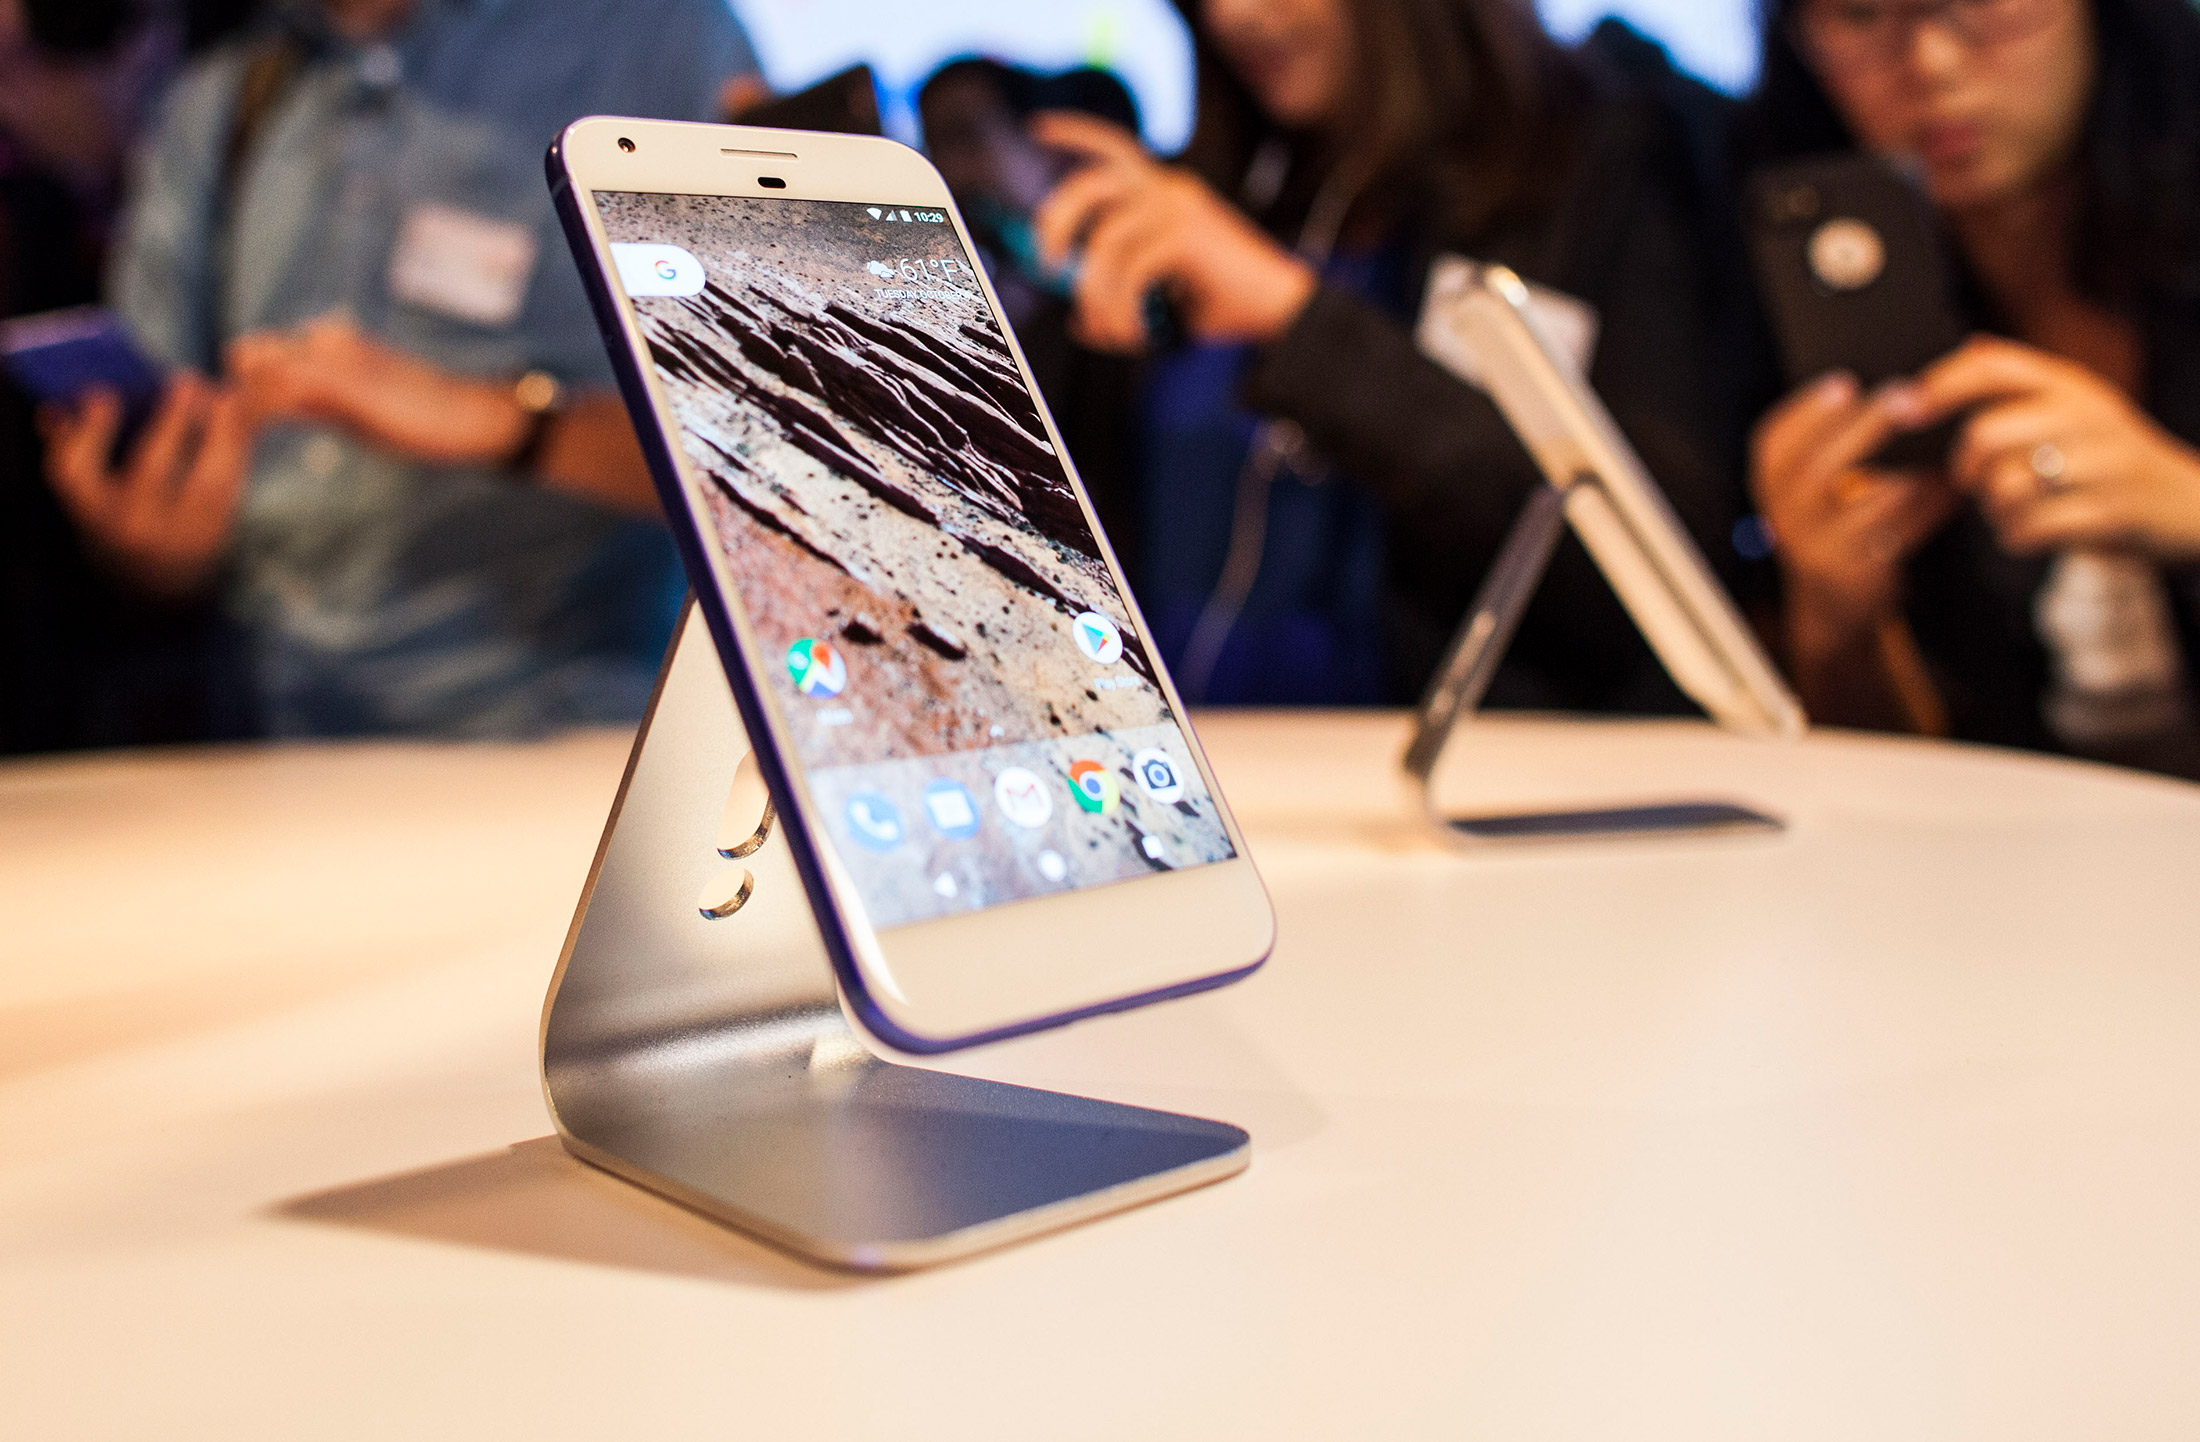 Google Has Its Own Phones. Now It Must Fix Its Retail Strategy